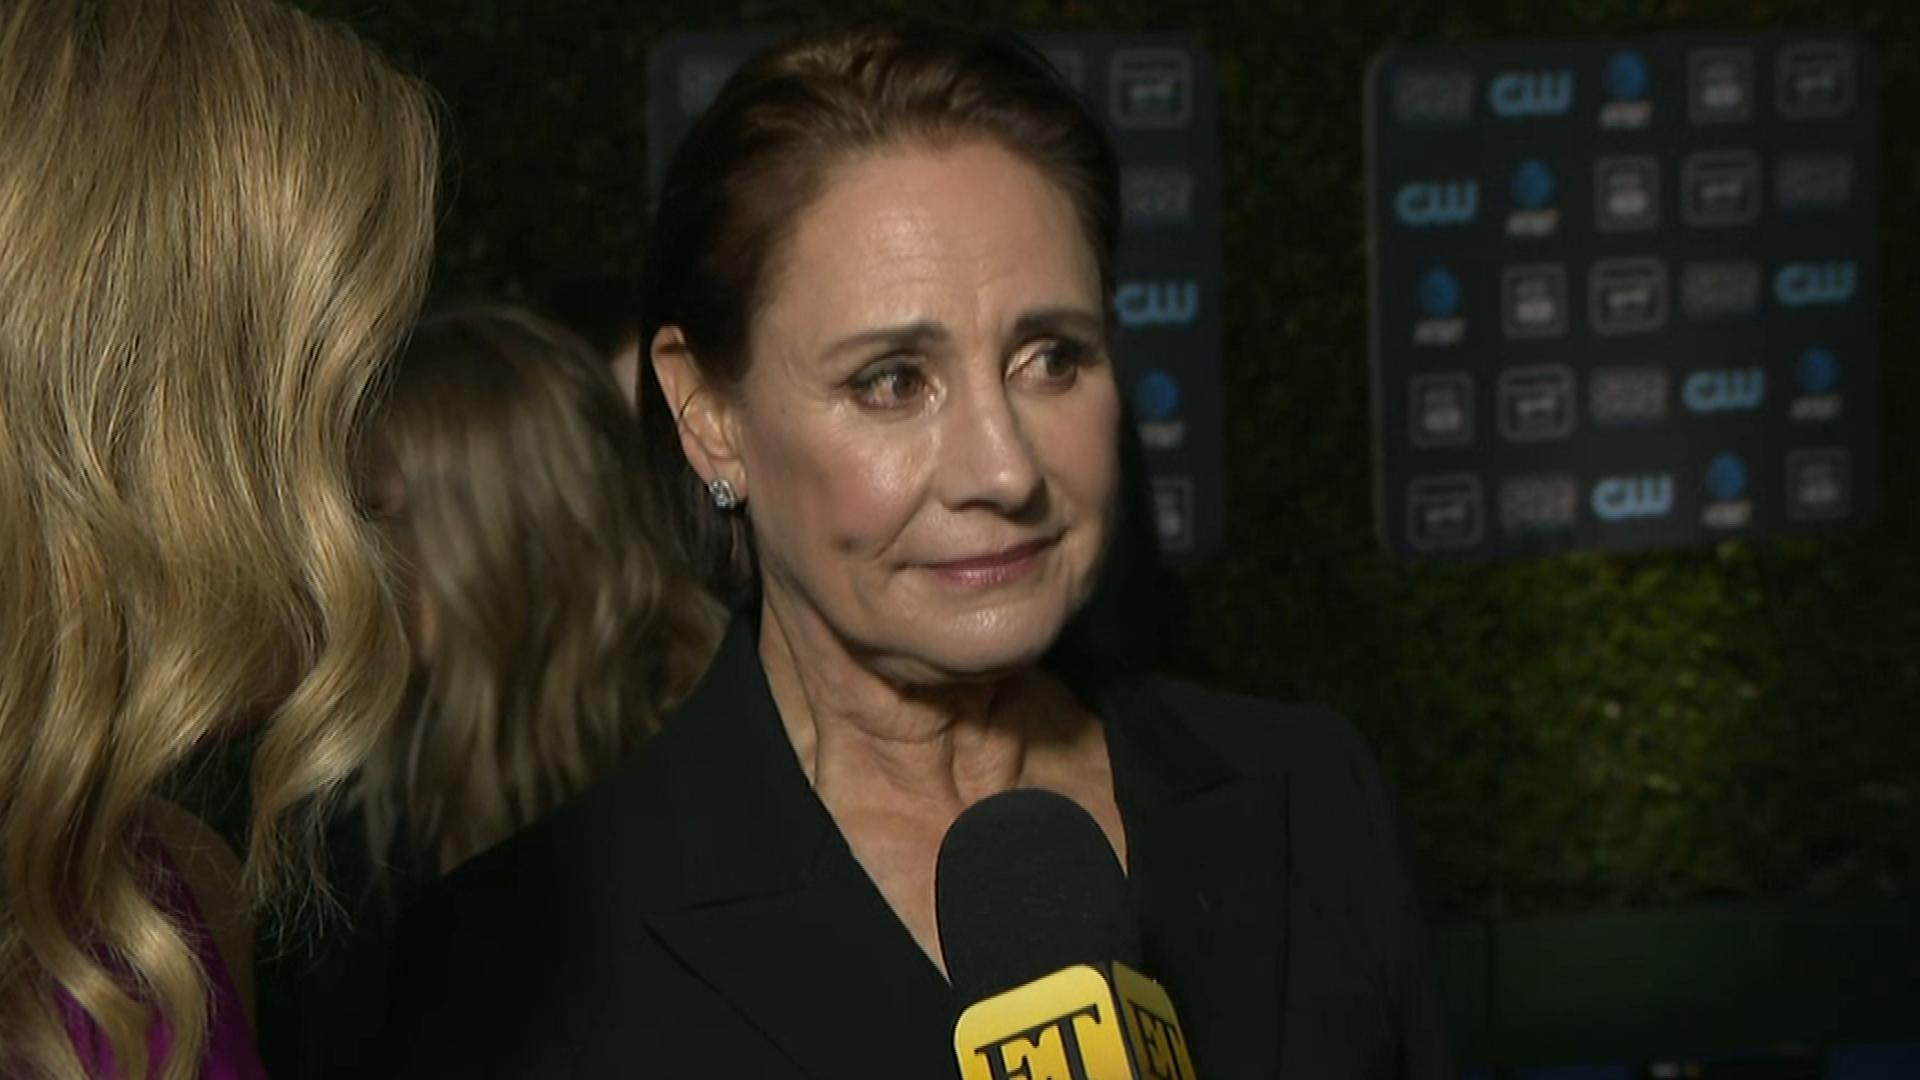 Laurie metcalf hot